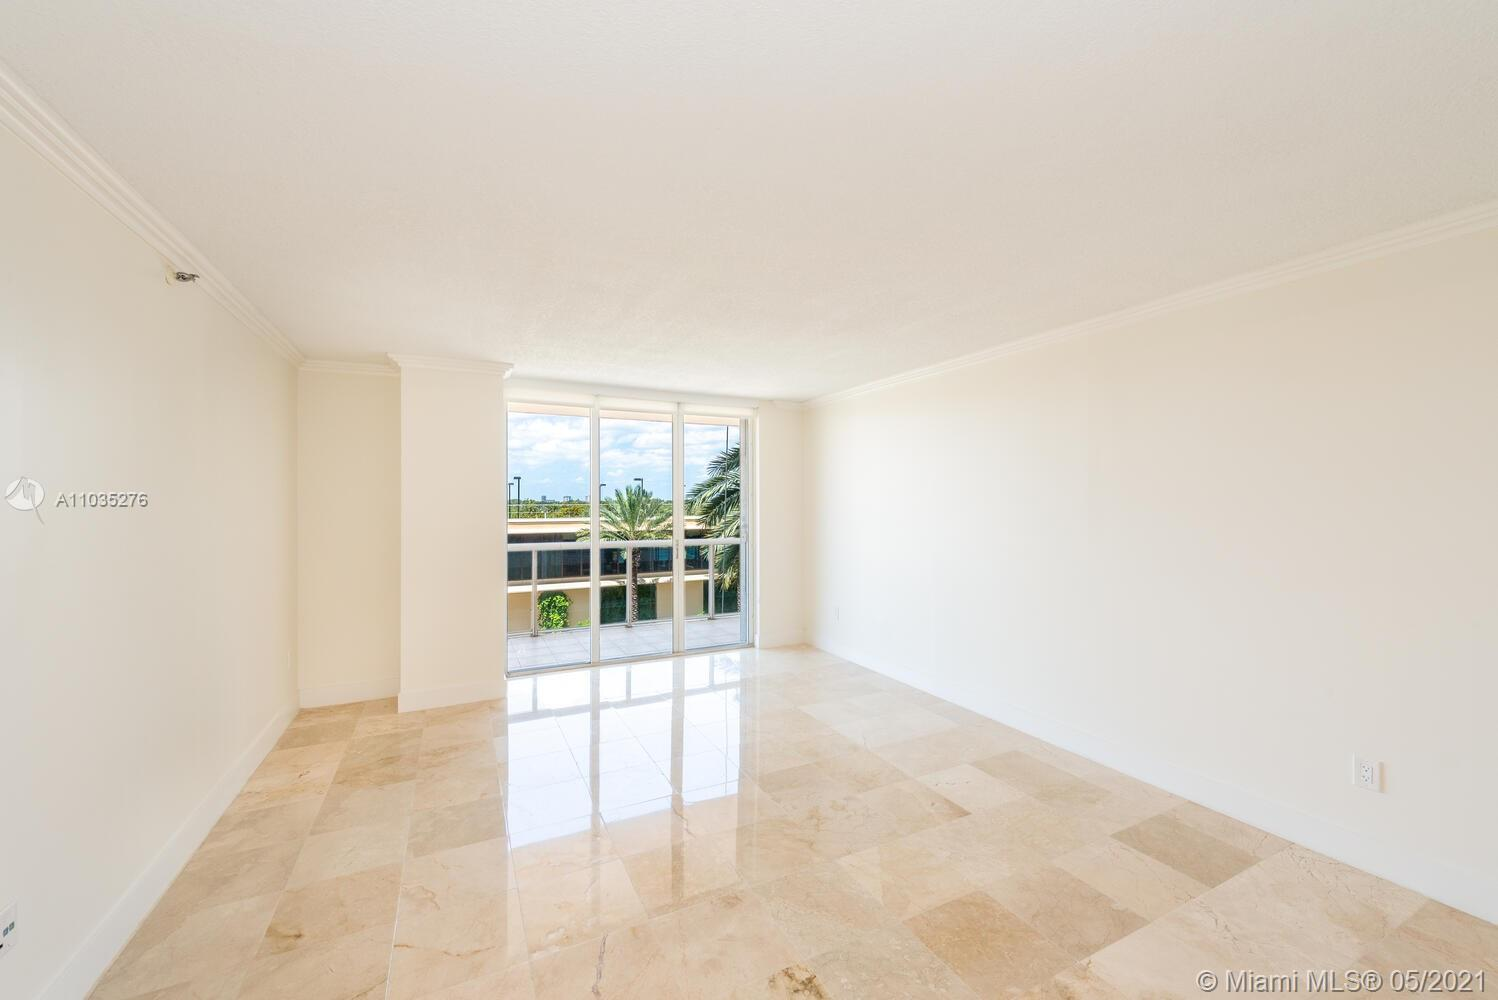 Photo of 8925 Collins Ave #4F, Surfside, Florida, 33154 - View towards double door entrance.